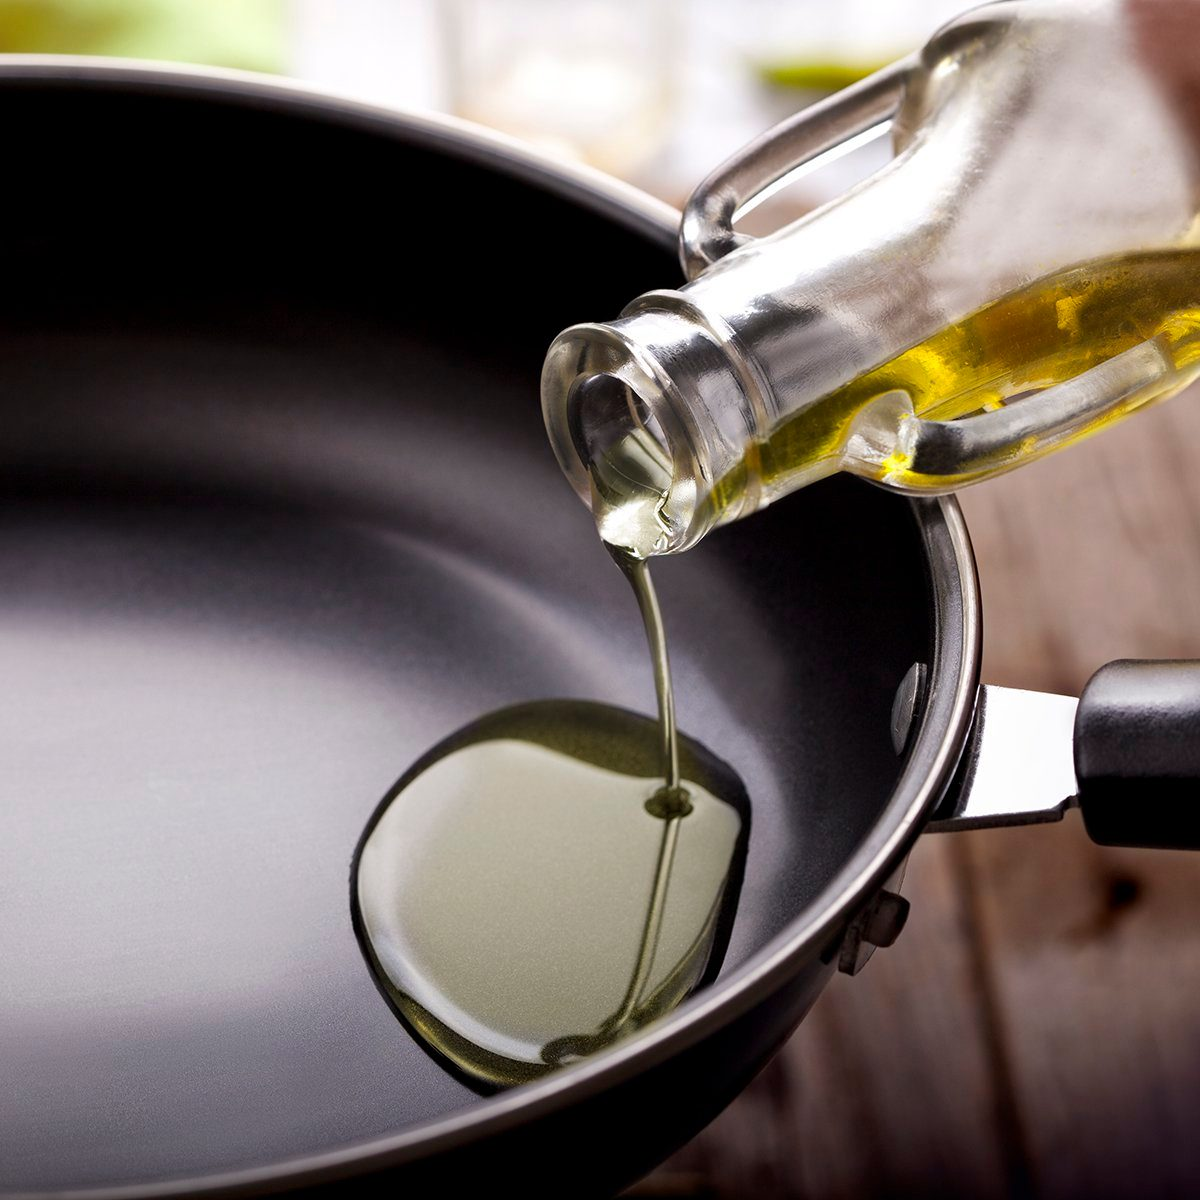 pouring eating oil in frying pan